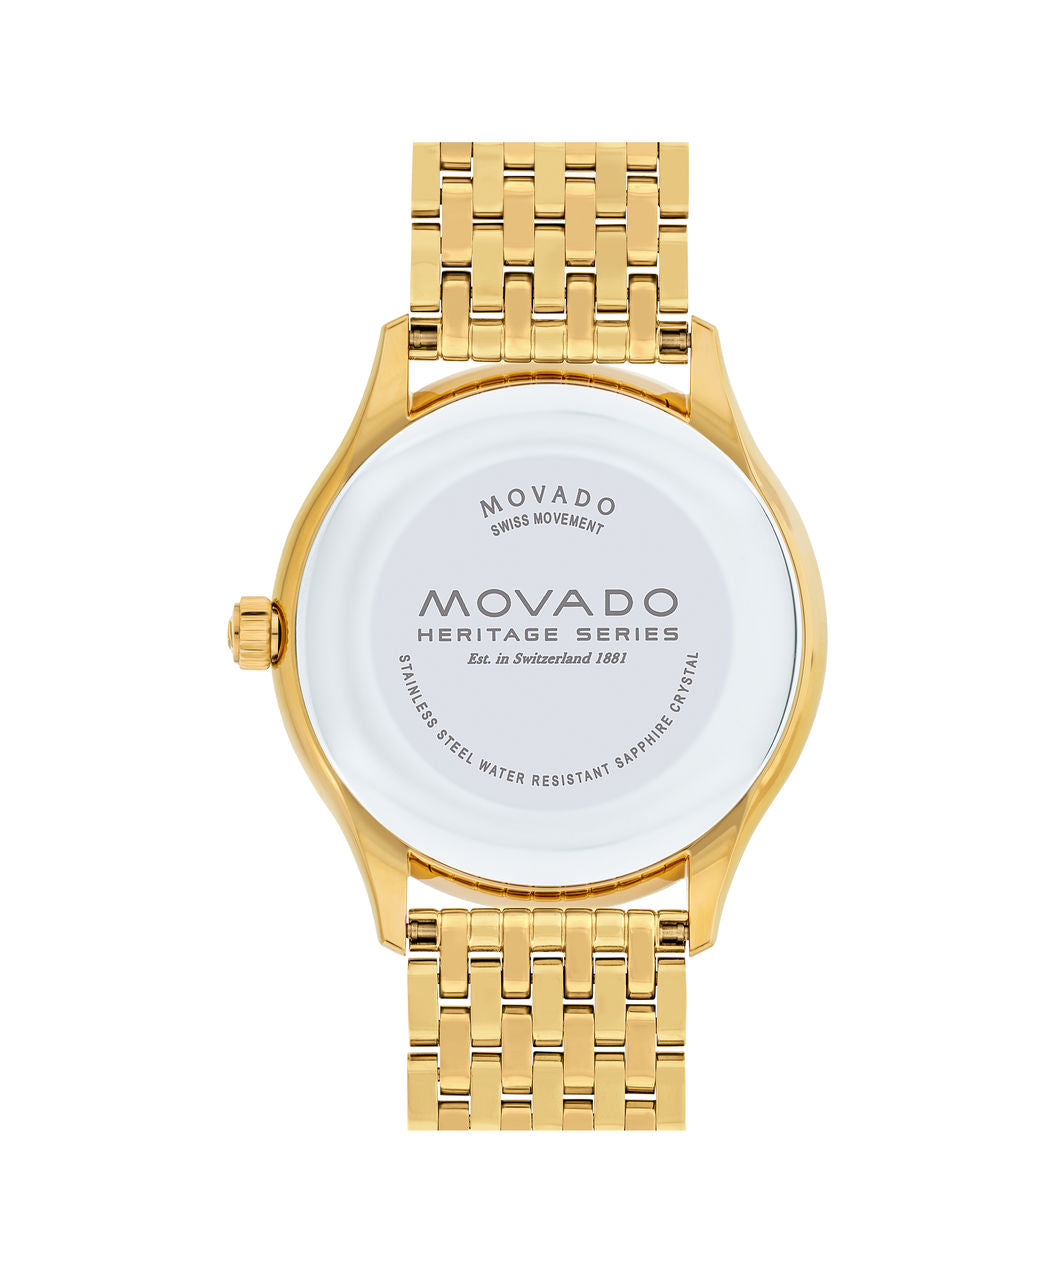 Movado Watch Heritage Series - Calendoplan Gold Tone on Bracelet